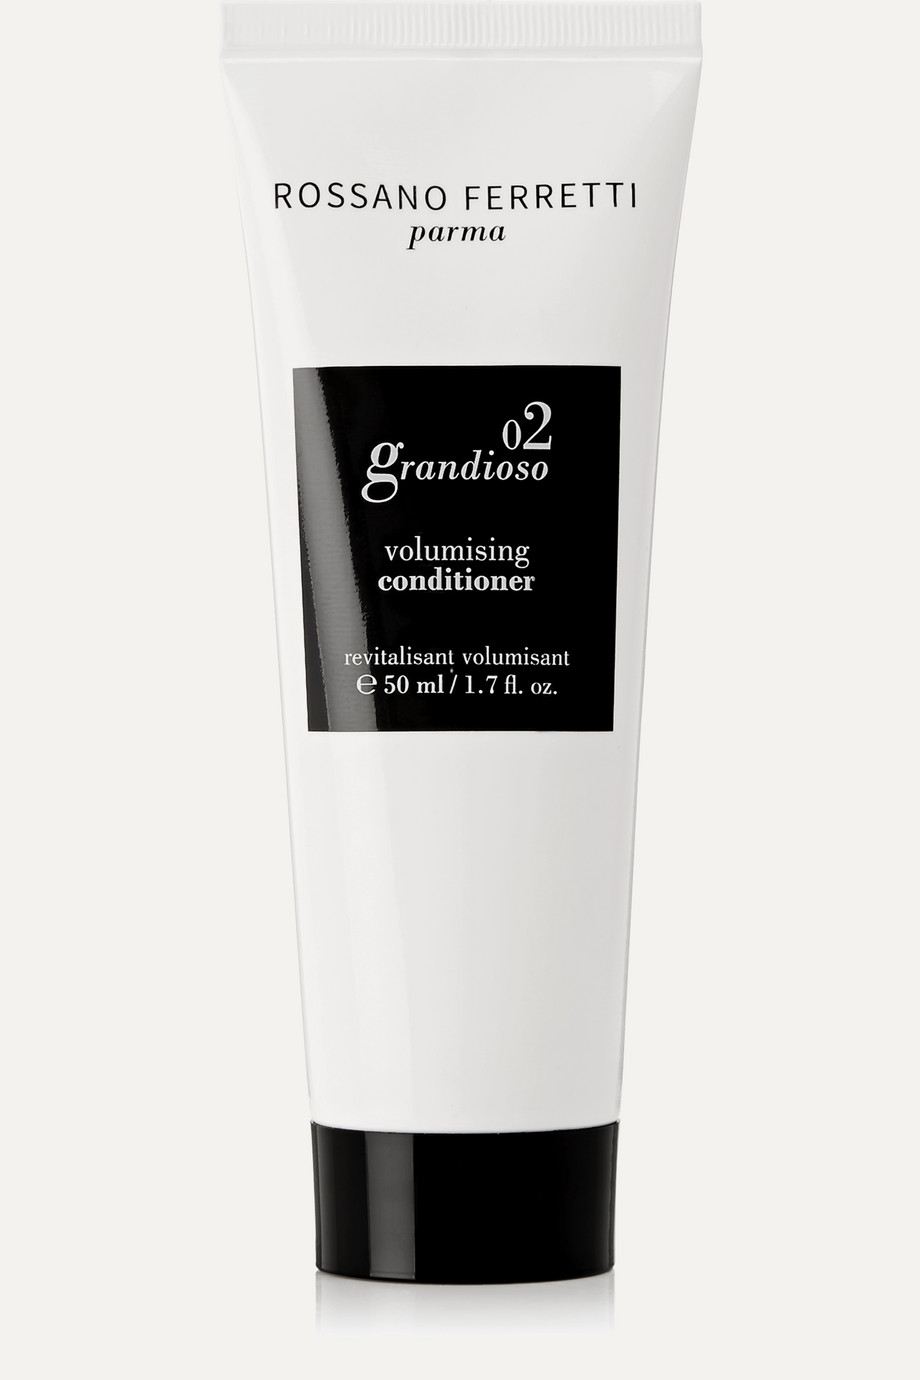 ROSSANO FERRETTI PARMA Grandioso Volumising Conditioner, 50ml